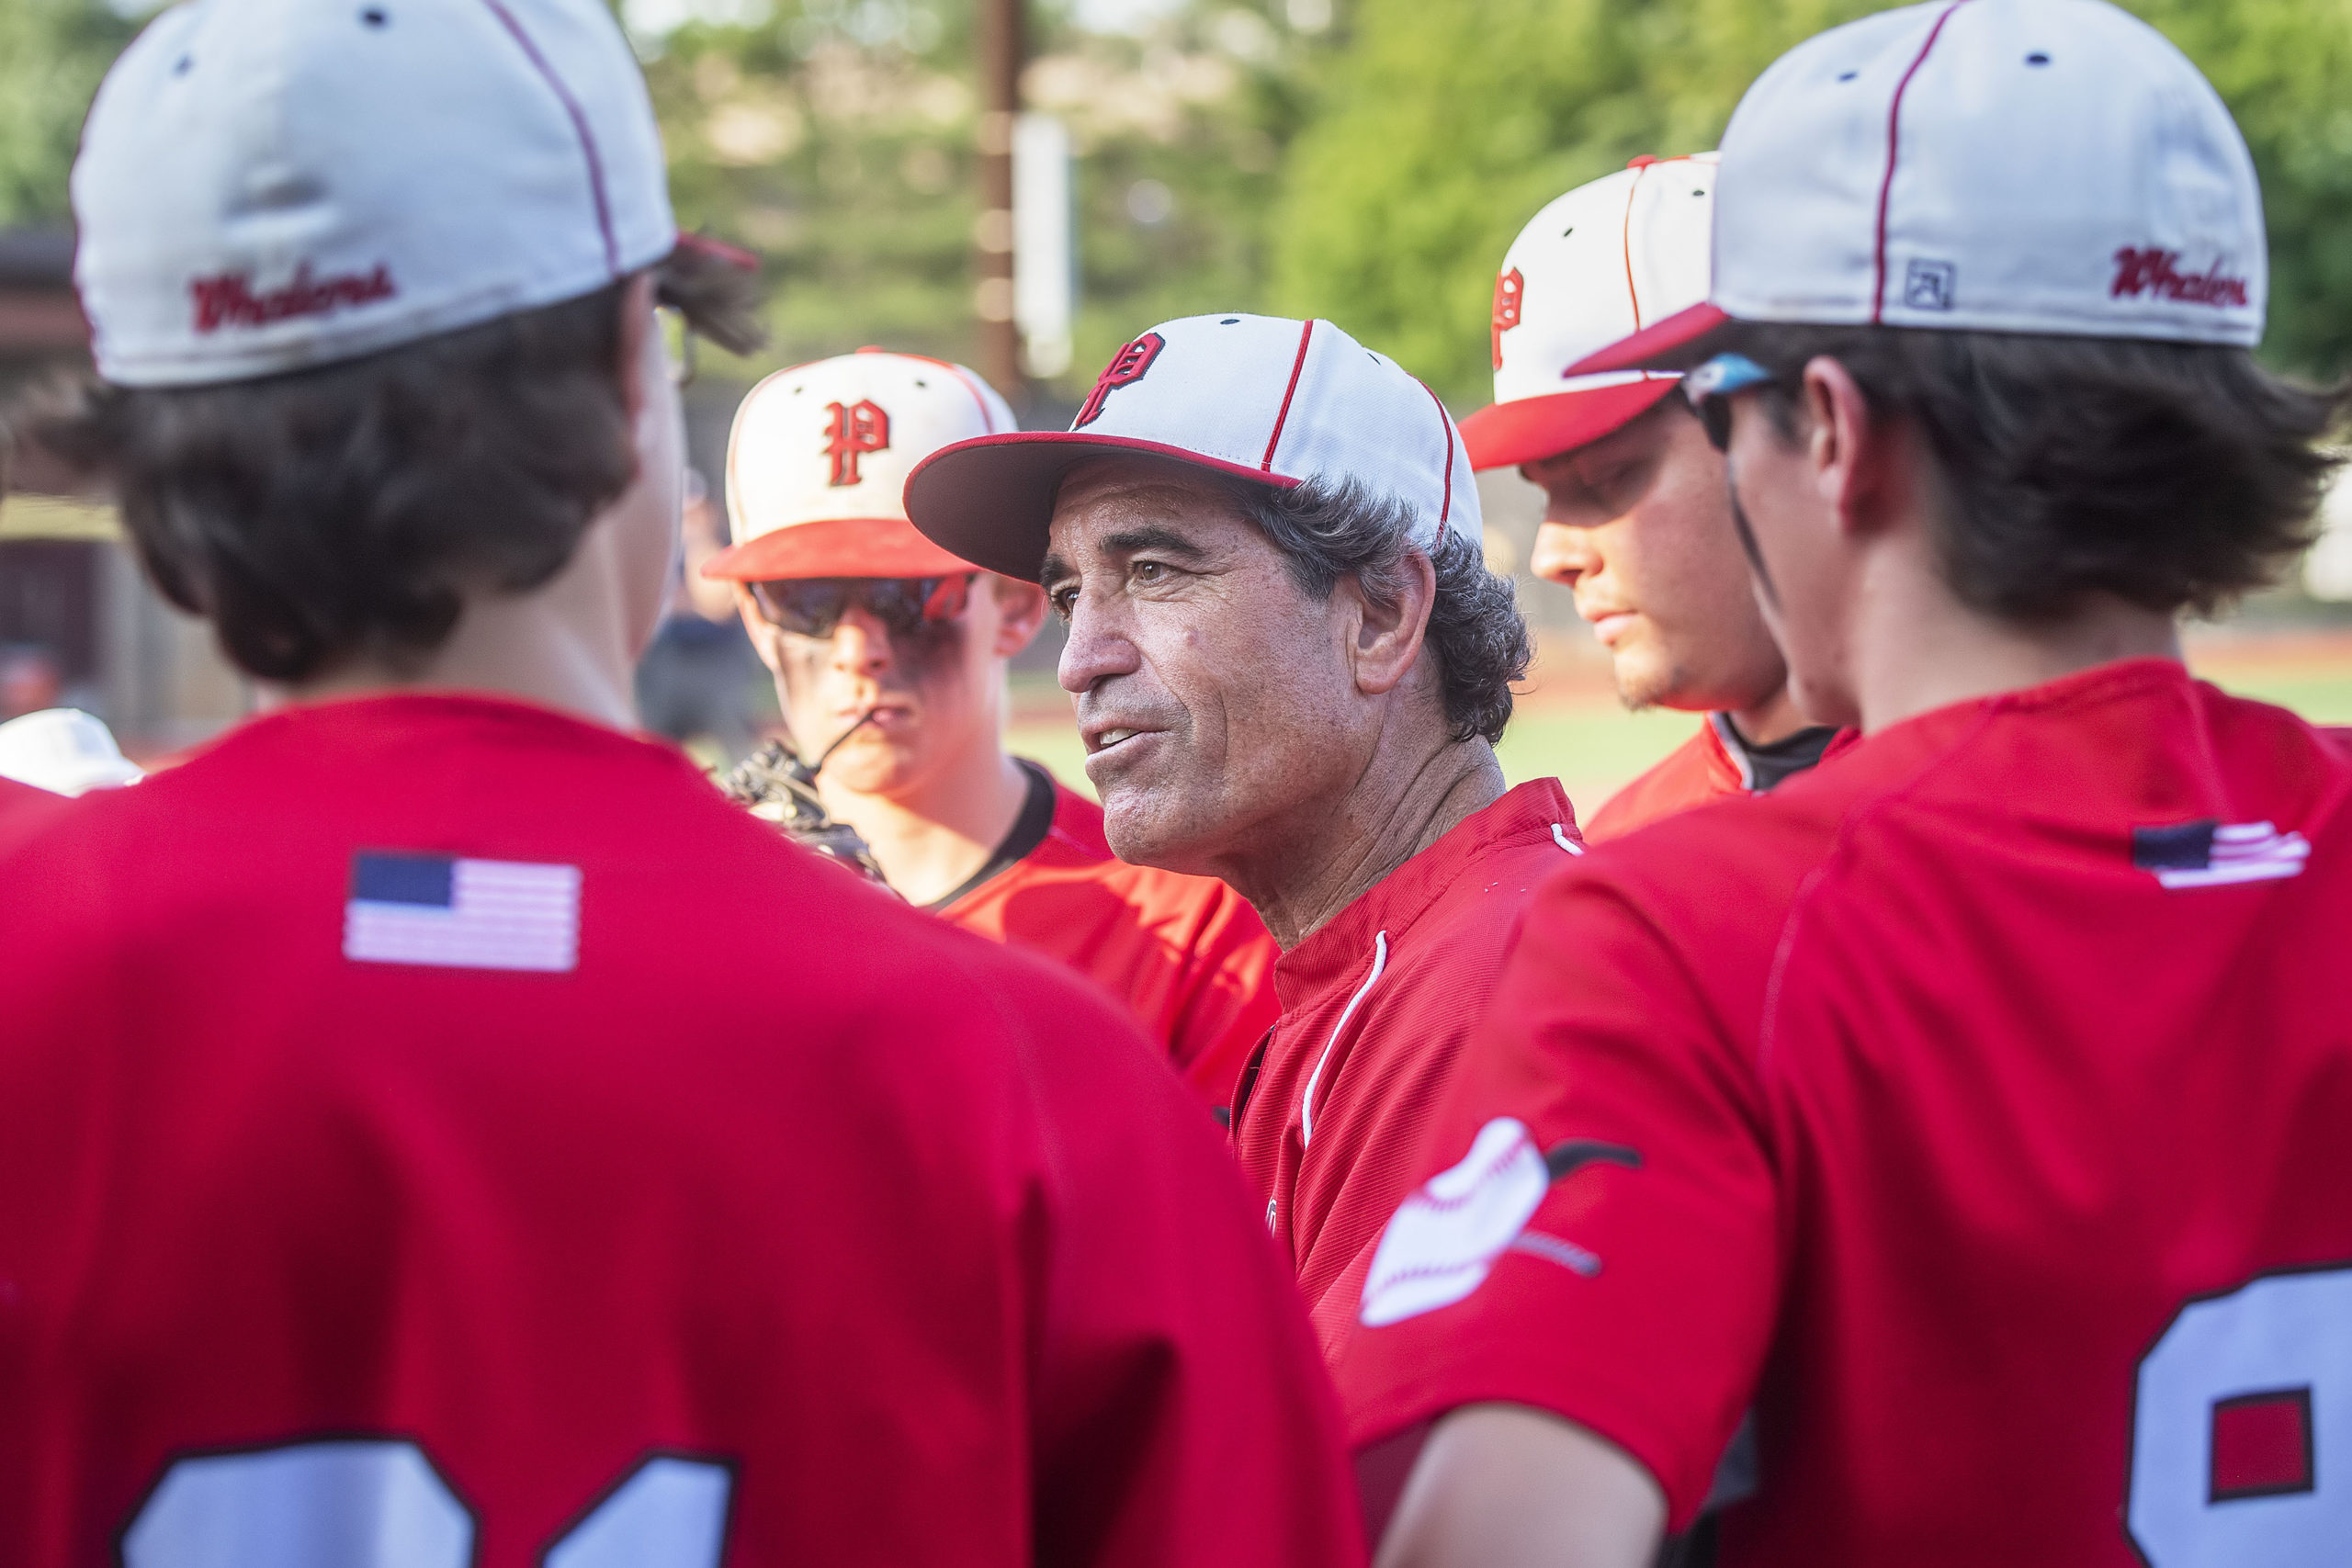 Pierson assistant coach Benito Vila gives the team a pep talk after a rough inning.